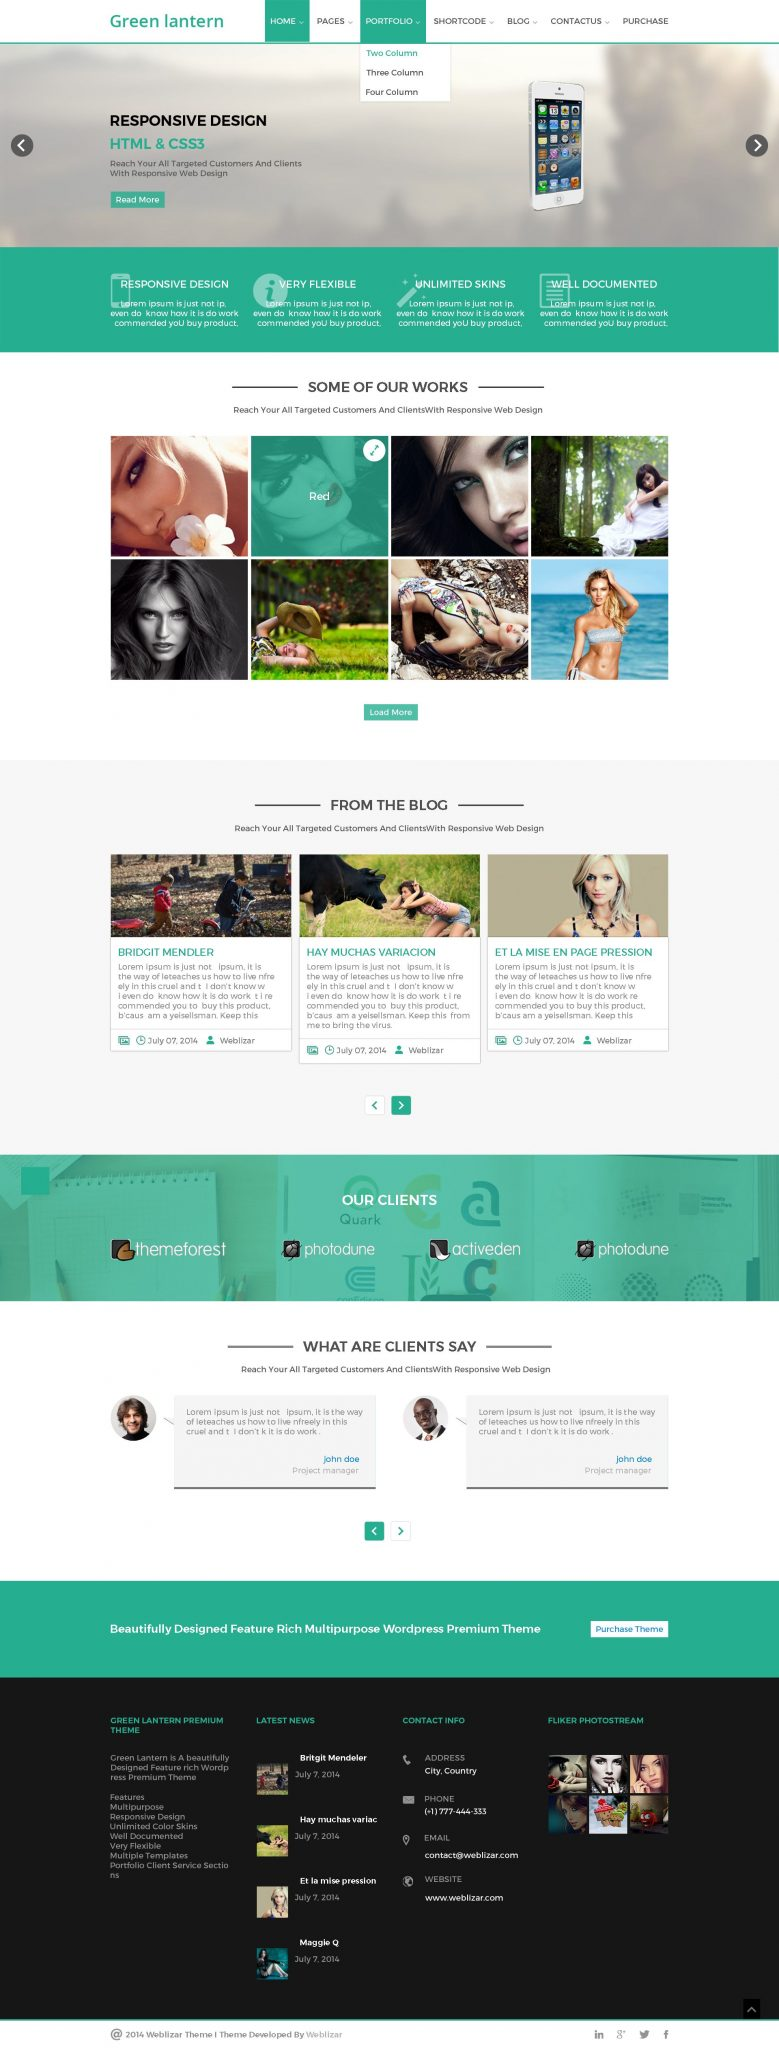 relaunching wordpress themes greenlantern